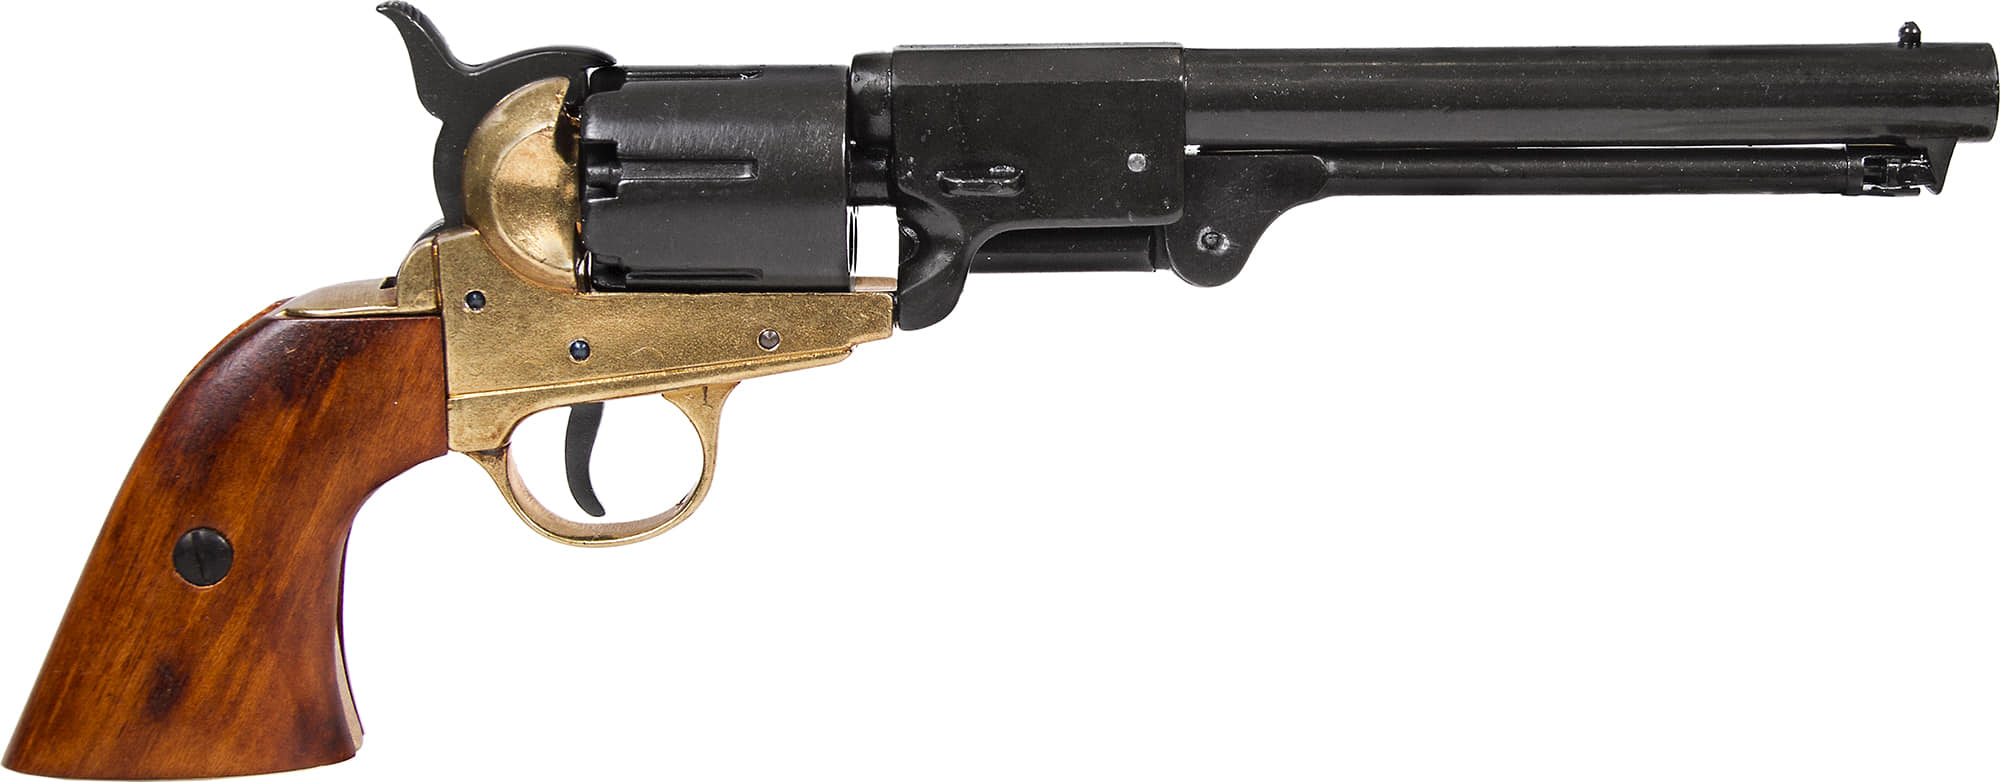 CD1083L-Réplique décorative Denix de Revolver 1851 marine américaine - CD1083L